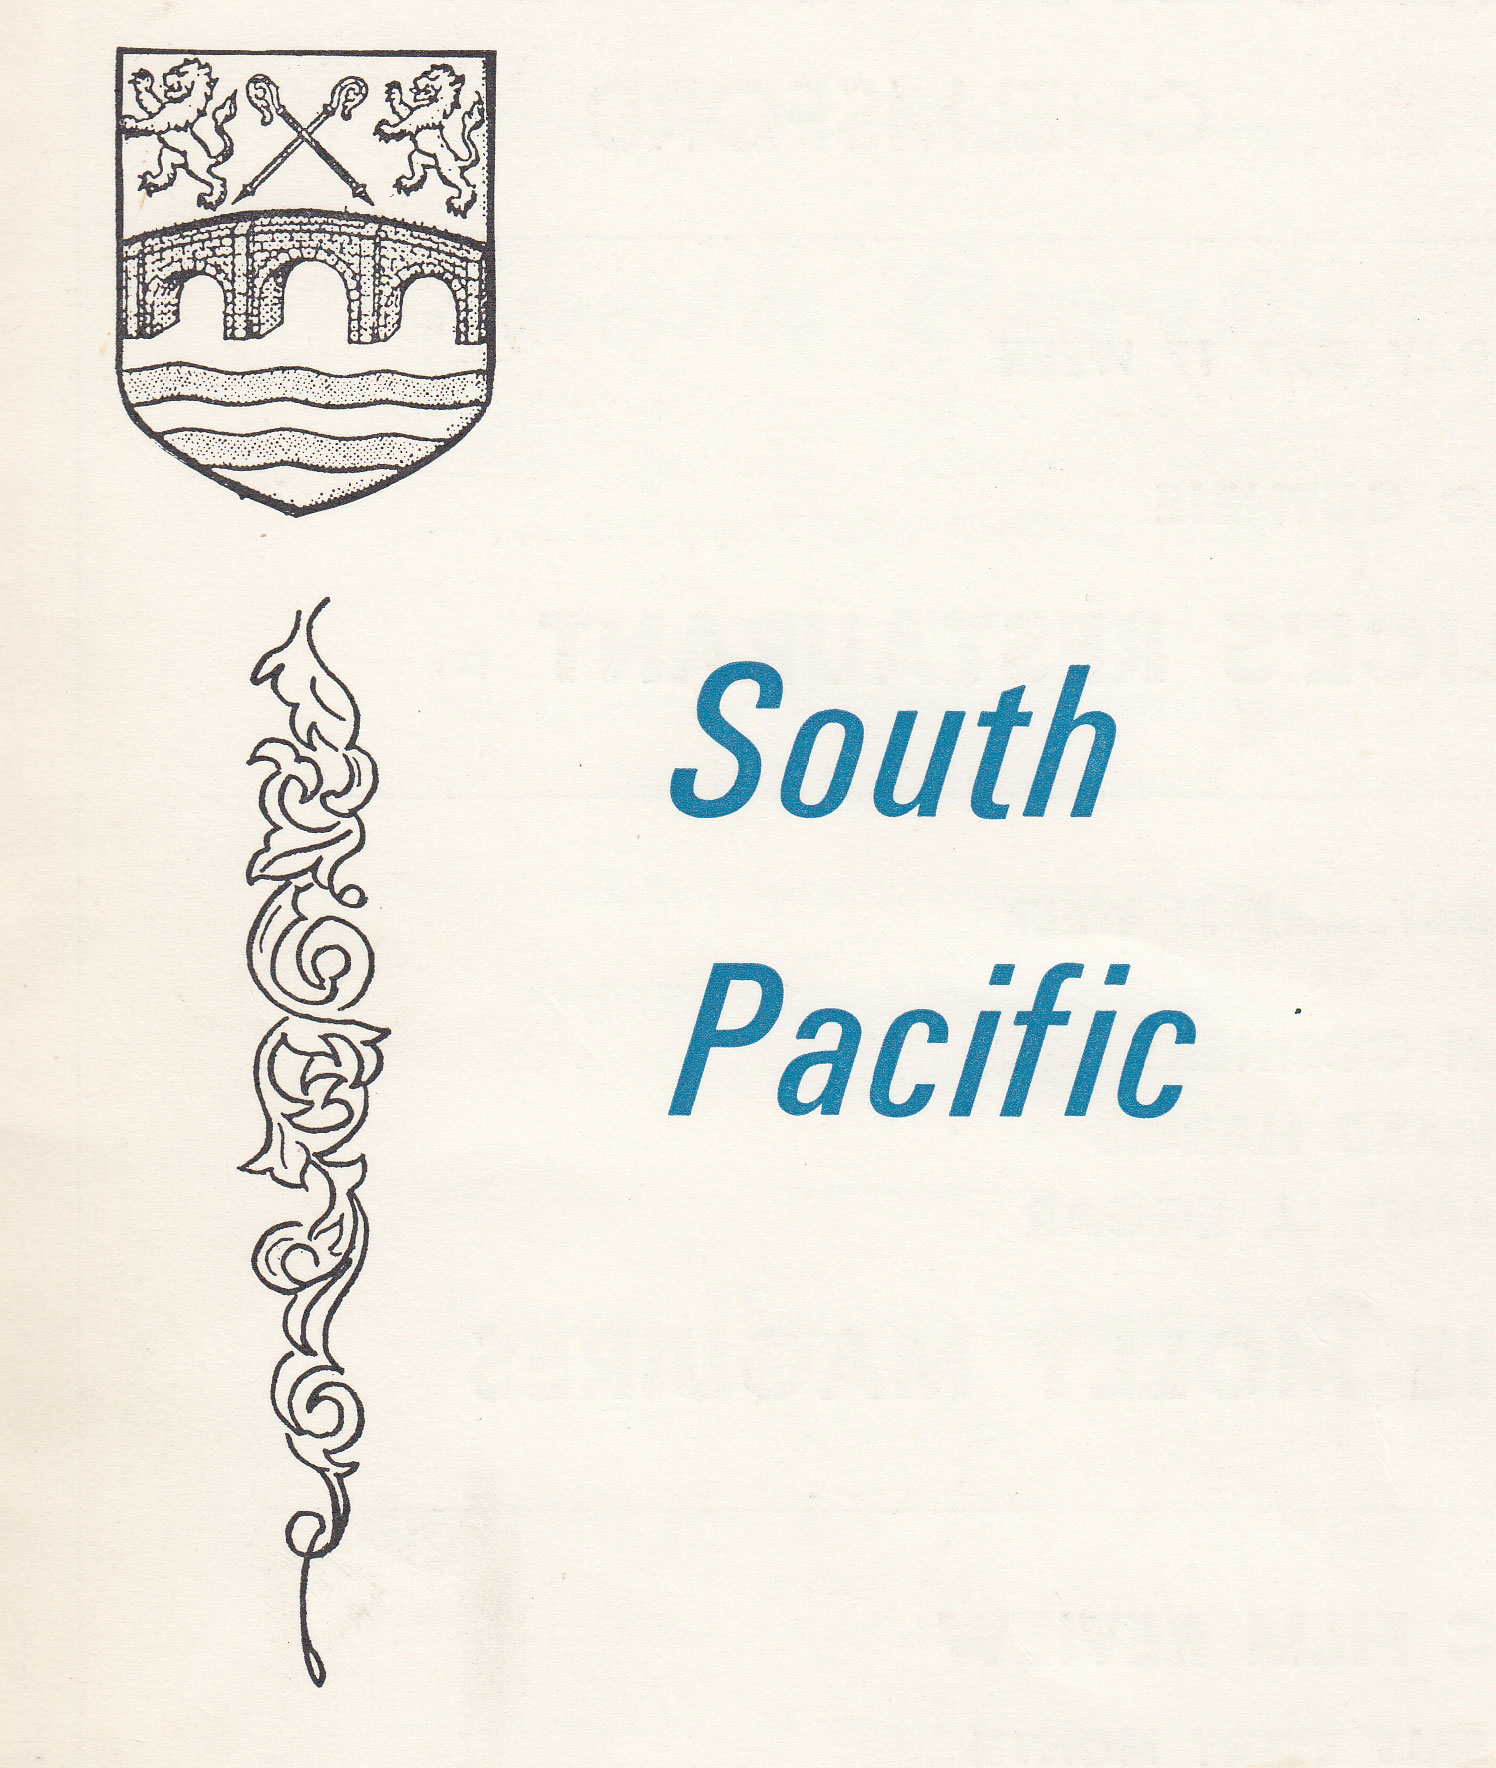 South Pacific (1970)